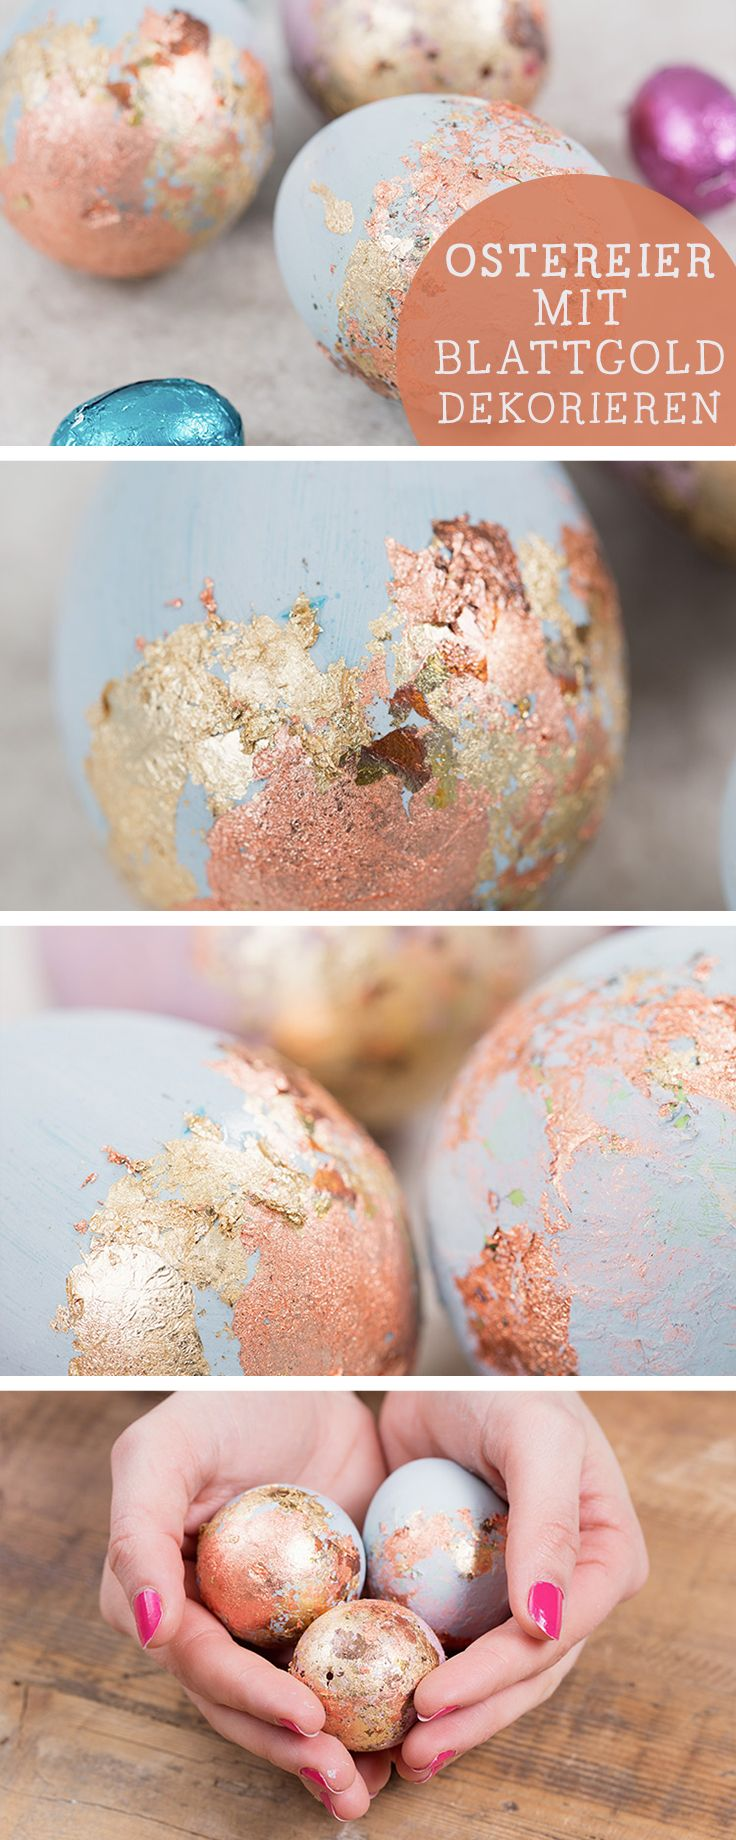 DIY-Anleitung: Ostereier mit Blattgold verzieren, luxuriöse edle Osterdeko / fancy easter decoration: use gold foil to decorate easter eggs via DaWanda.com